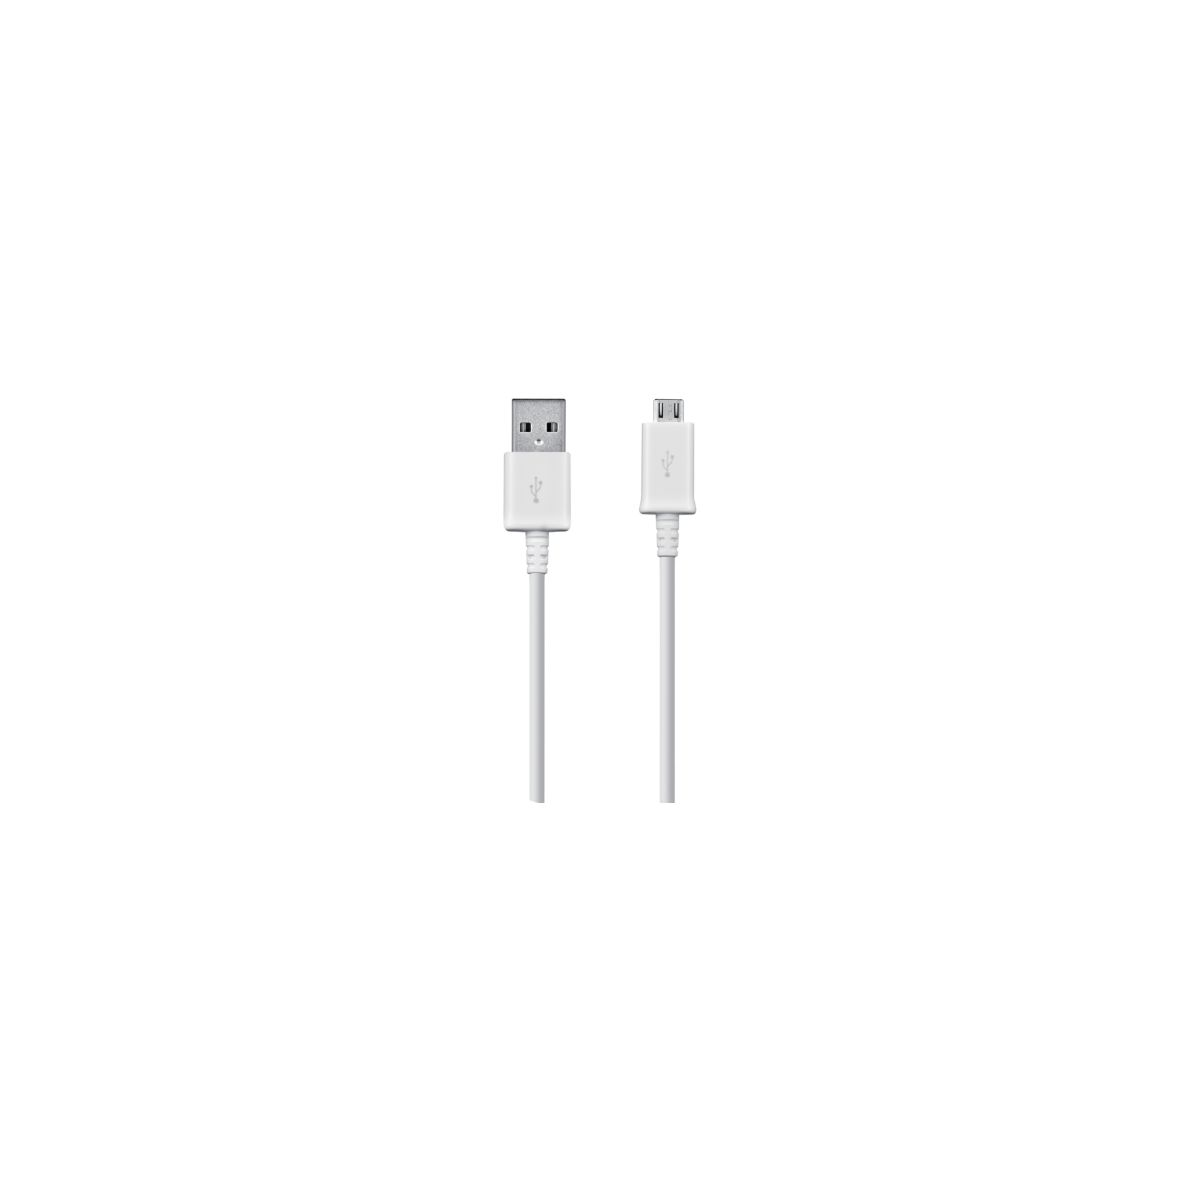 Usb samsung usb - micro usb 2.0 blanc 1 (photo)